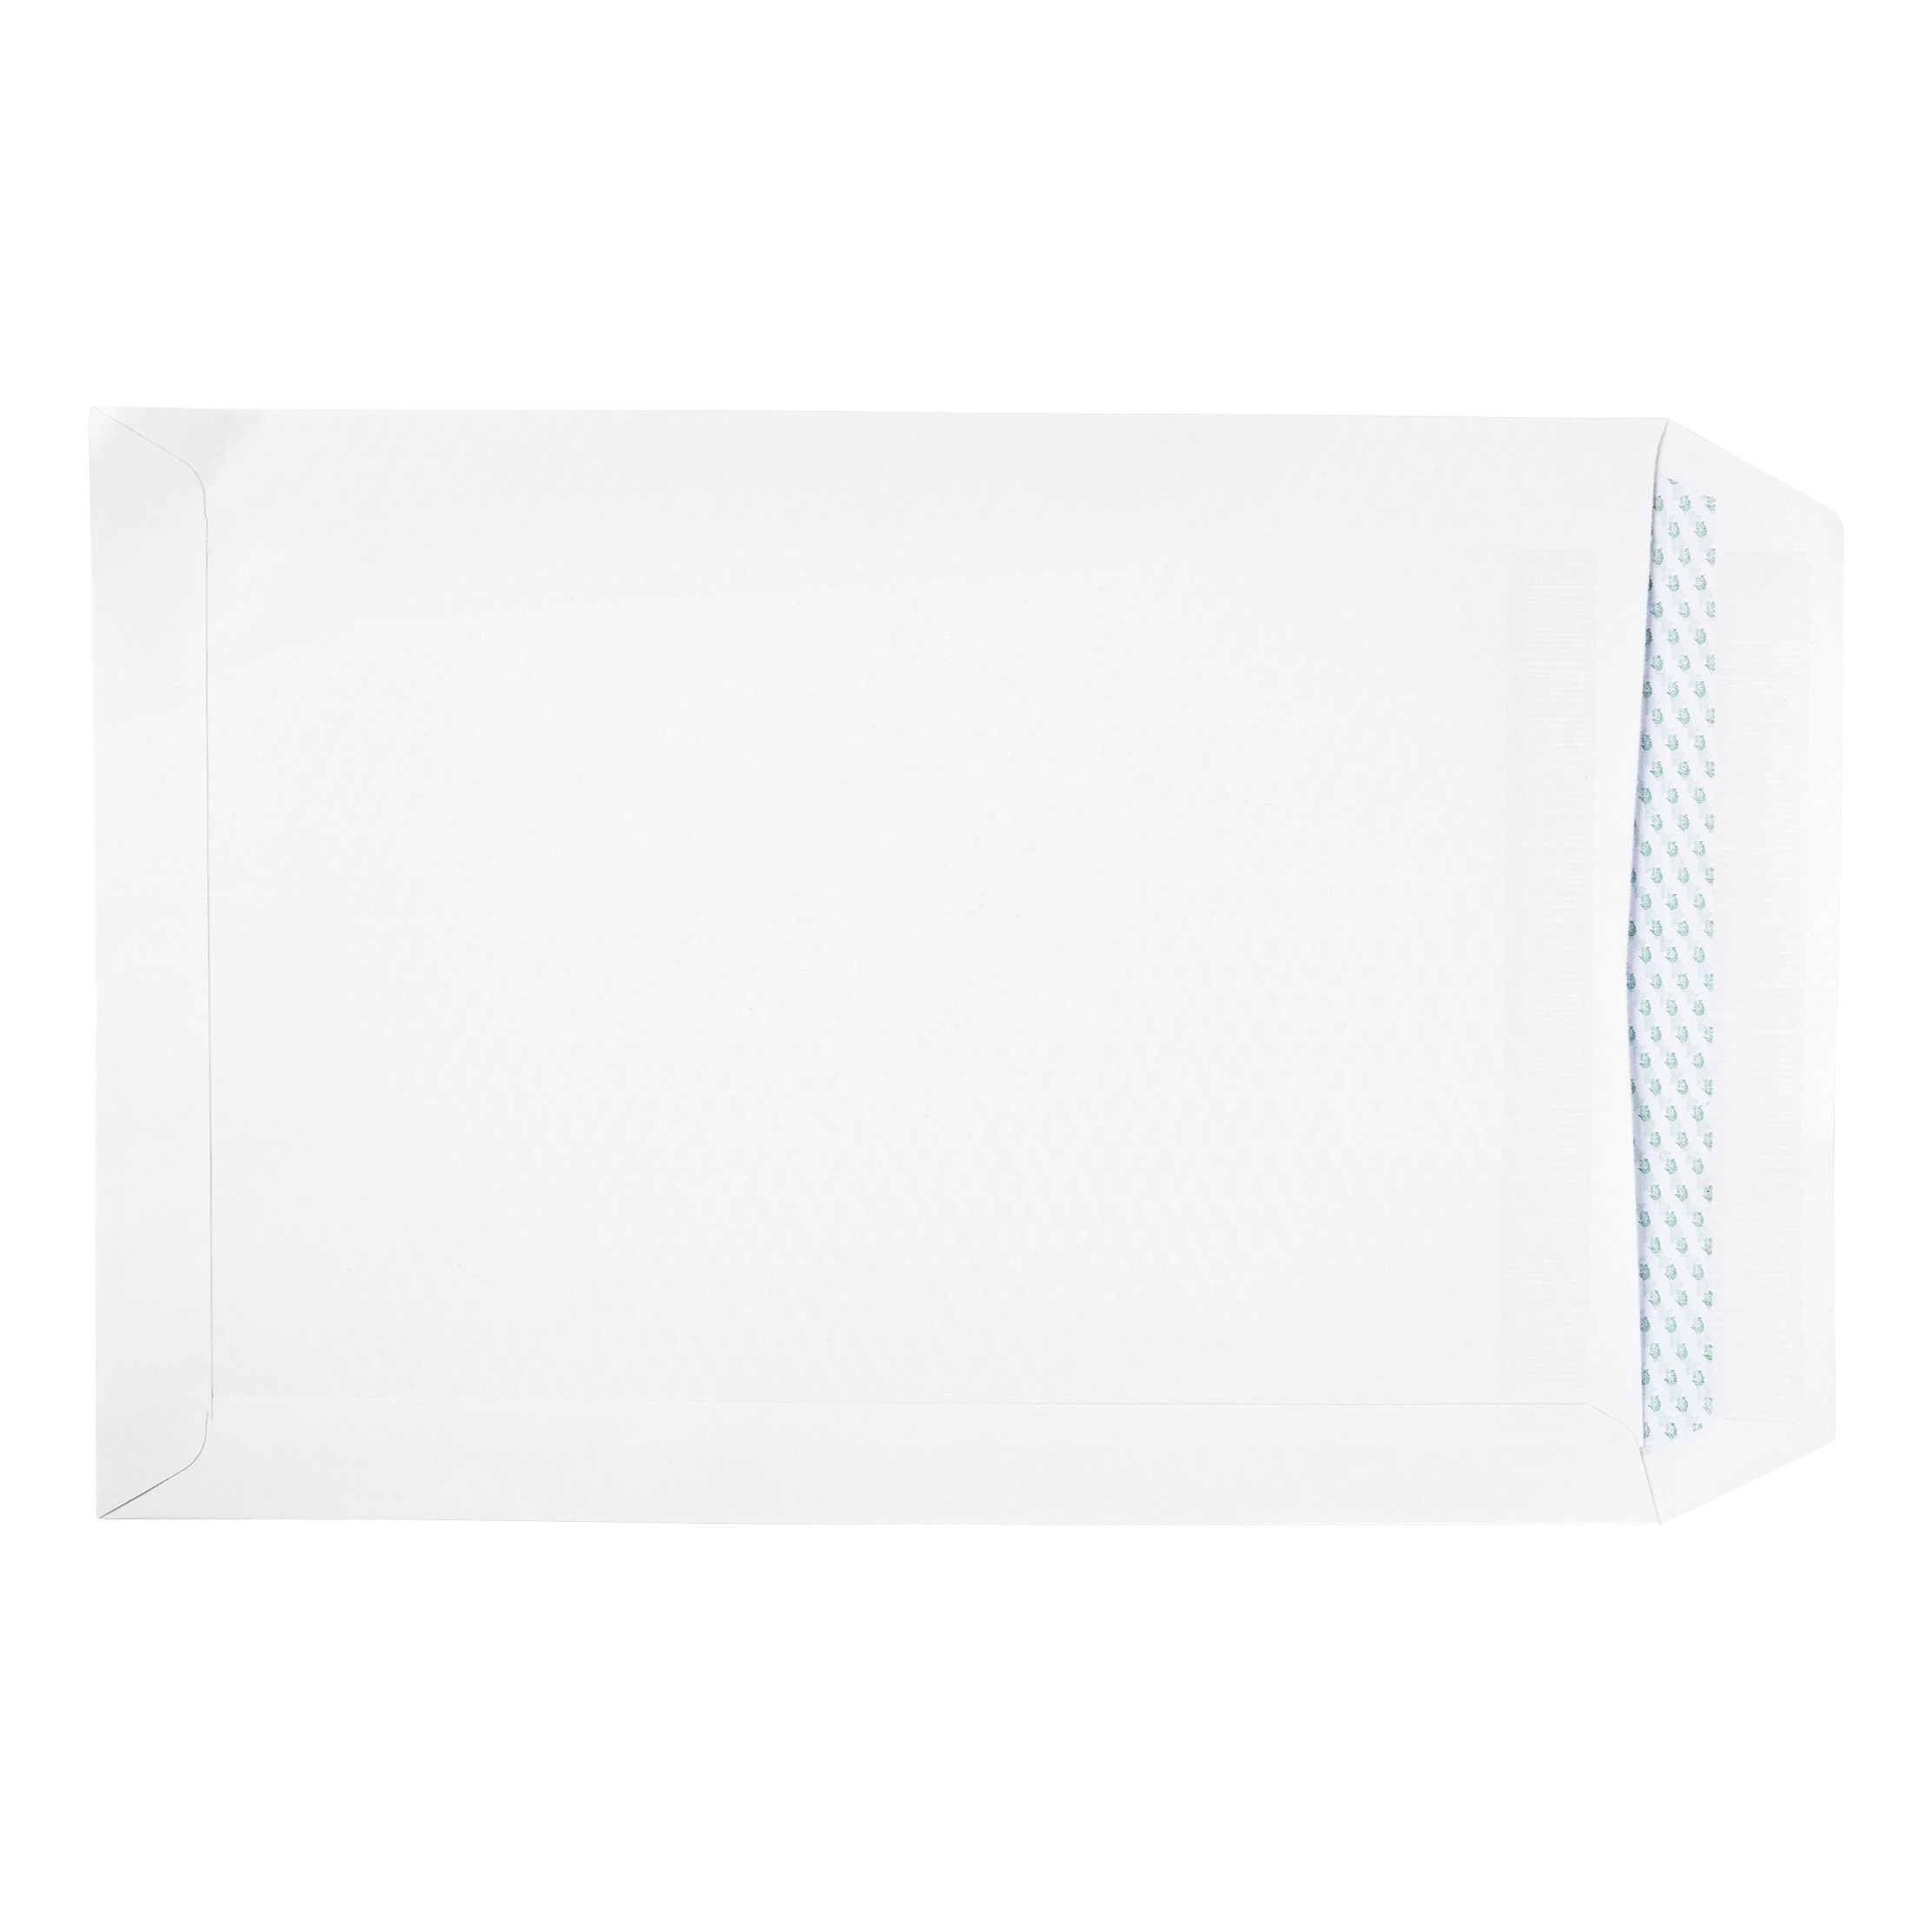 Standard envelopes 5 Star Eco Envelopes Recycled Pocket Self Seal 100gsm C4 324x229mm White Pack 250